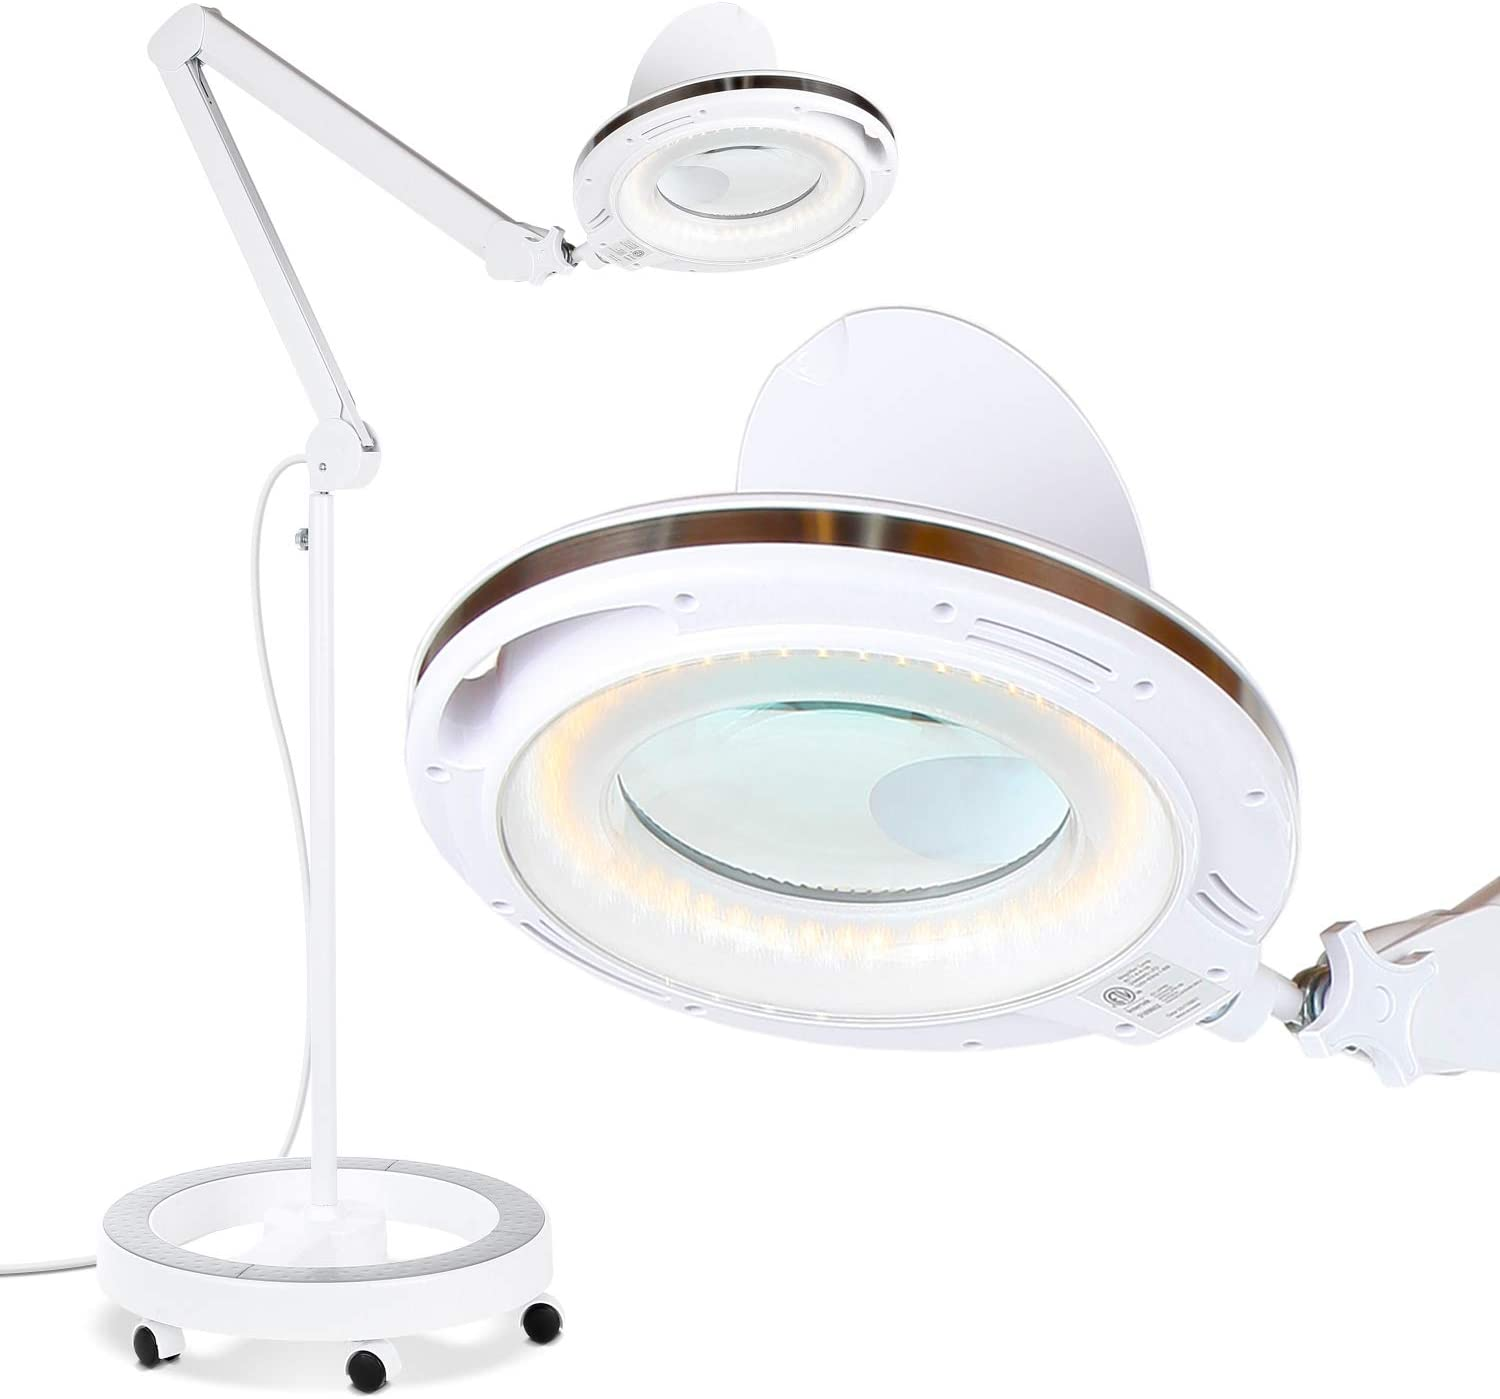 Brightech Import LightView Pro 6 Wheel Rolling Magnifying La 70% OFF Outlet Base Floor